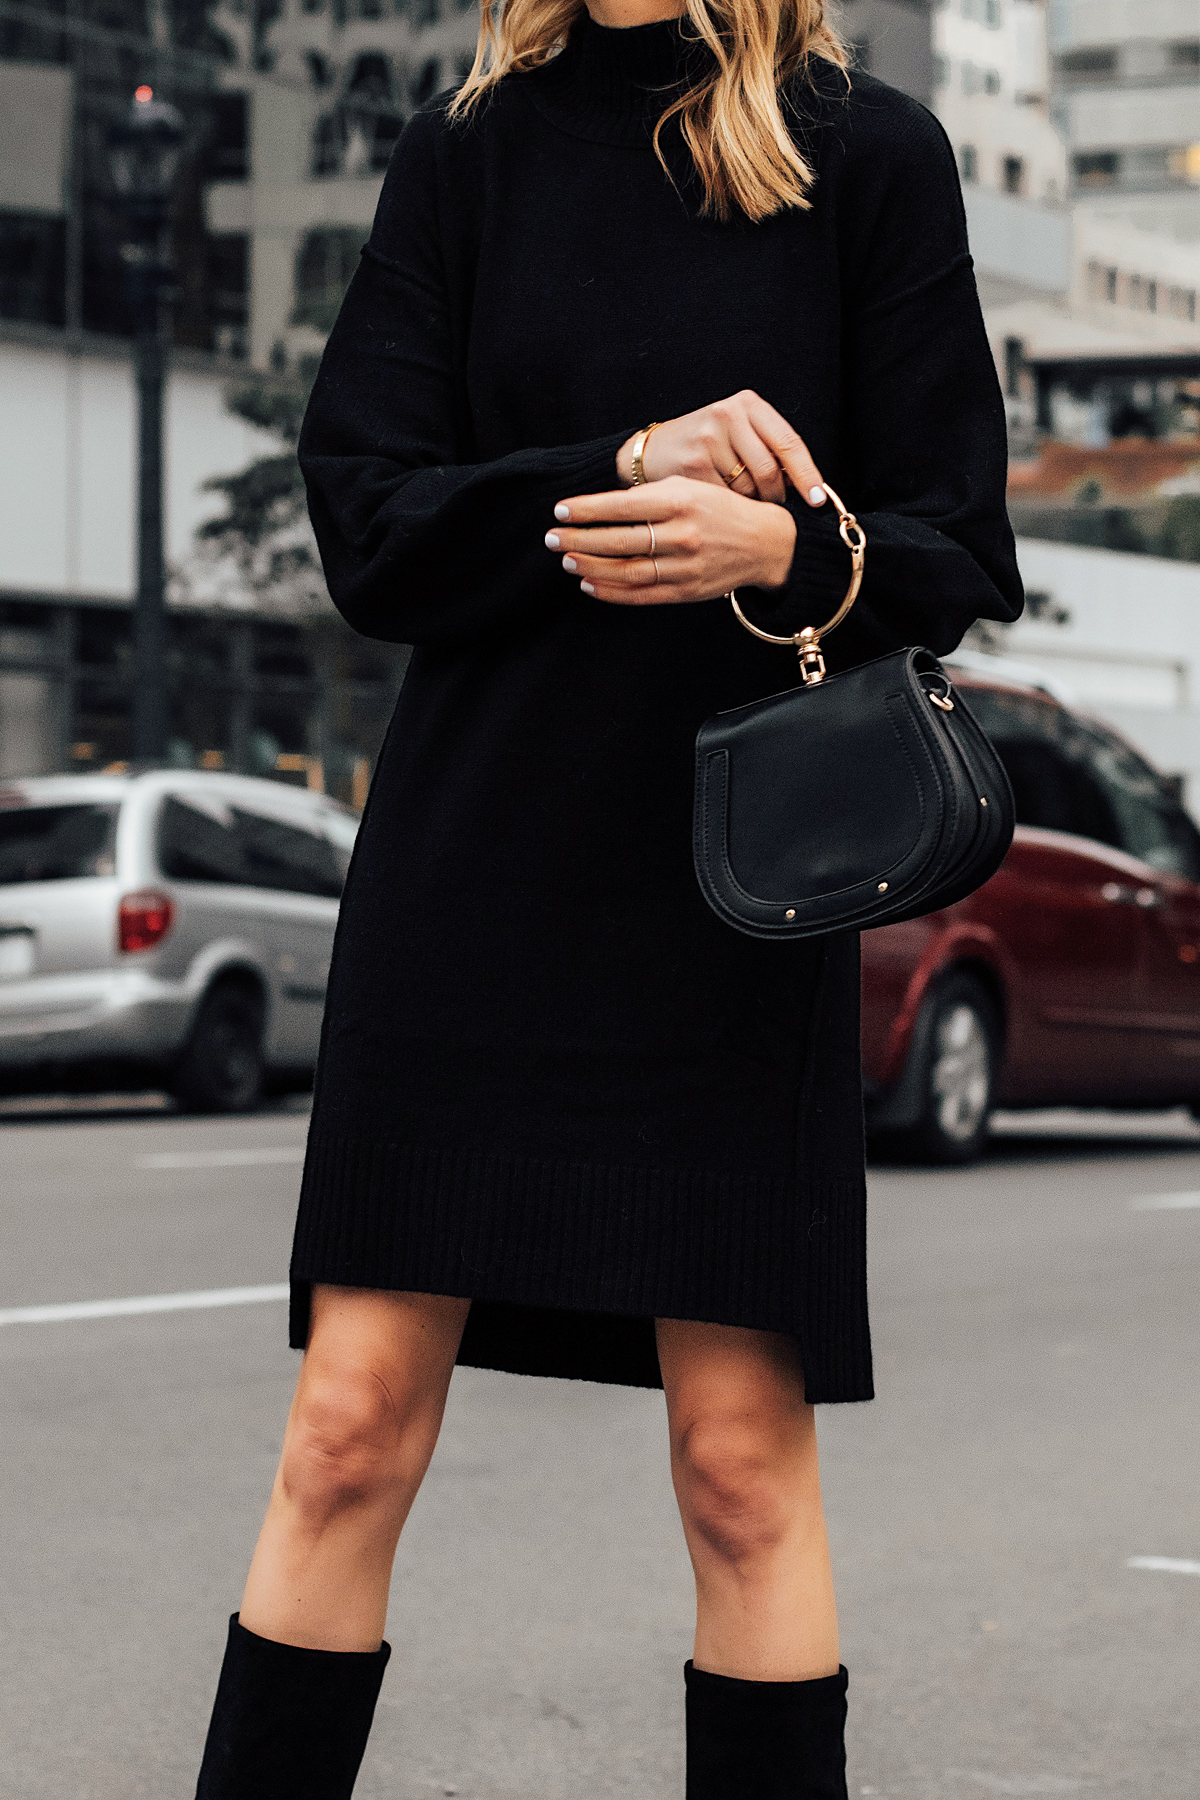 Woman Wearing Black Sweater Dress Black Tall Boots Black Clutch Handbag Fashion Jackson San Diego Fashion Blogger Street Style